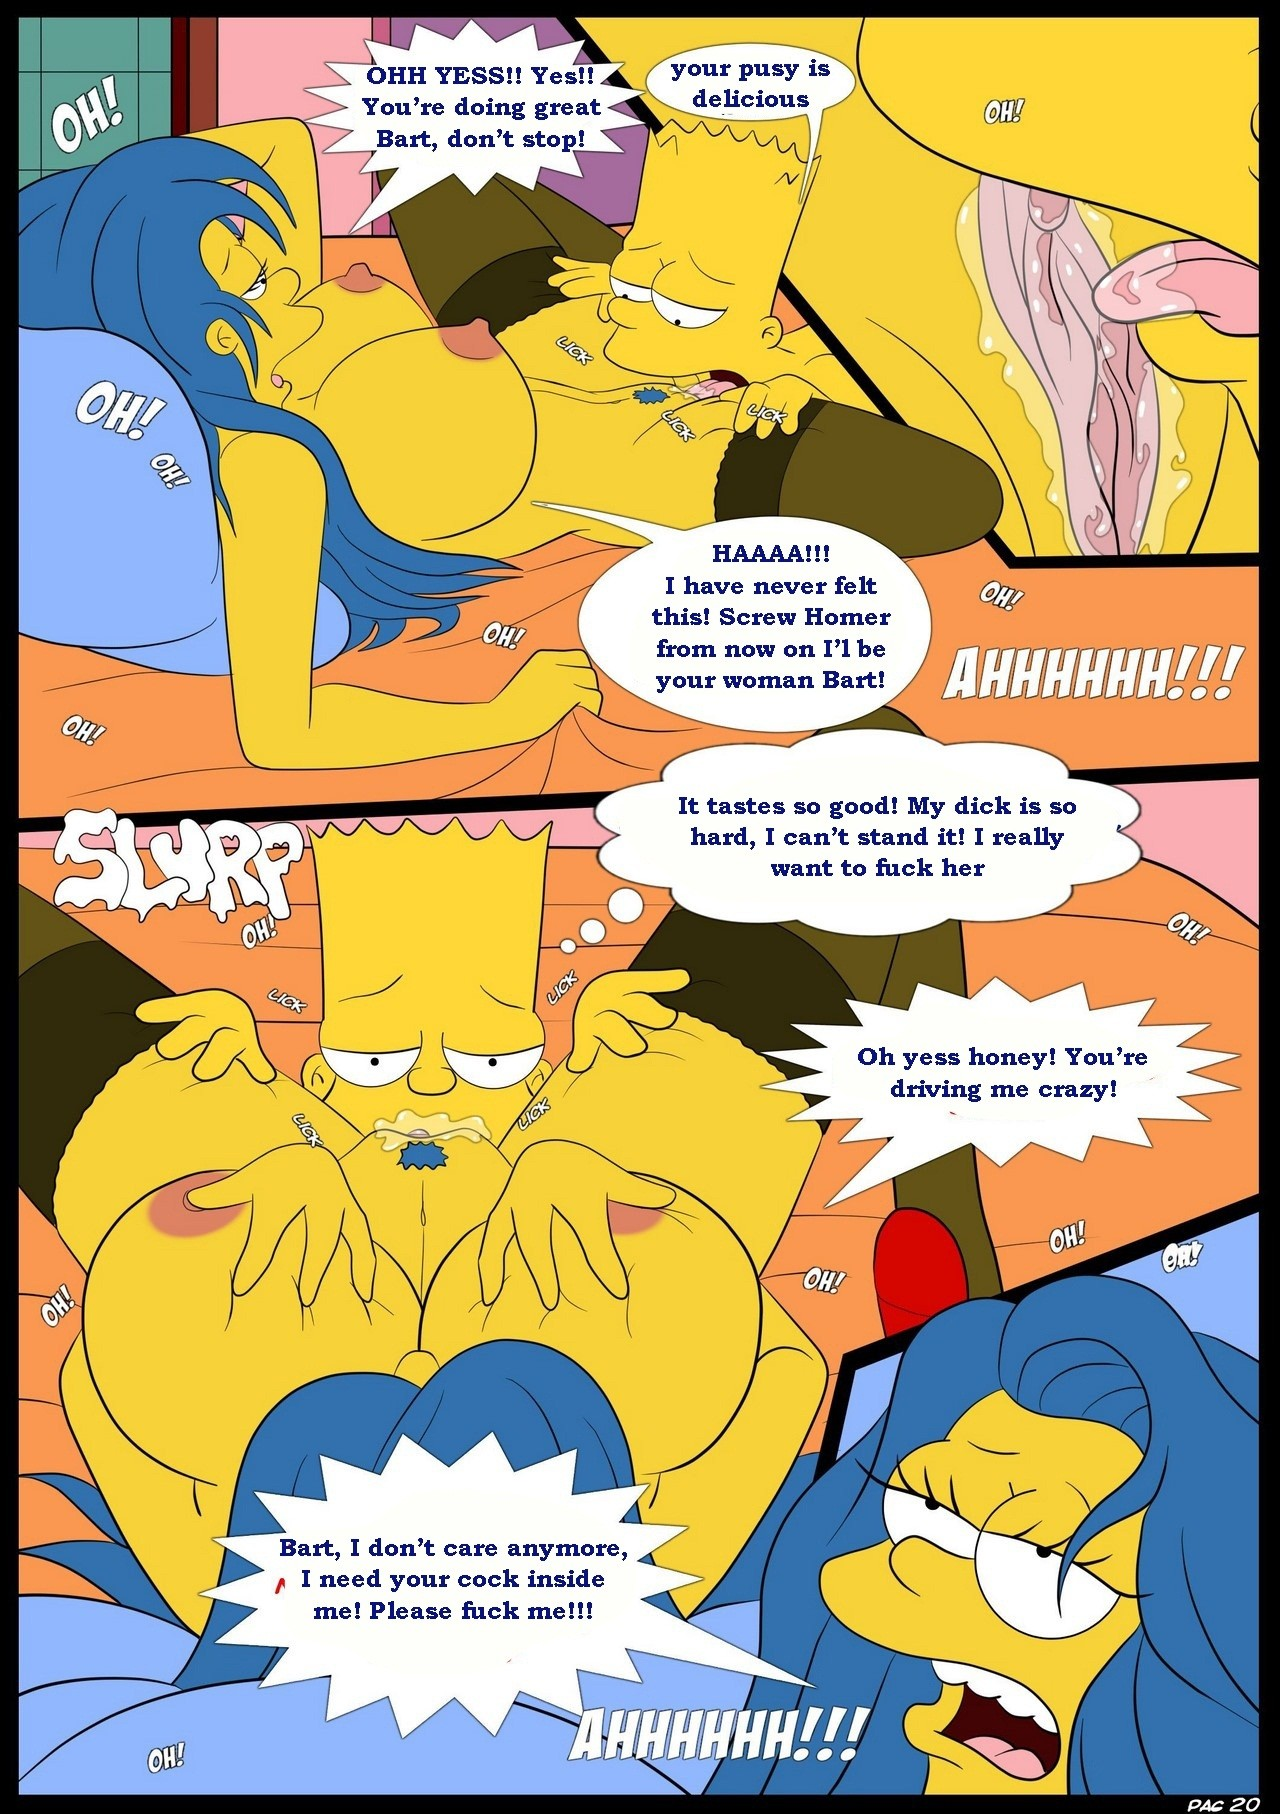 21 20 - The Simpsons. Part 3.